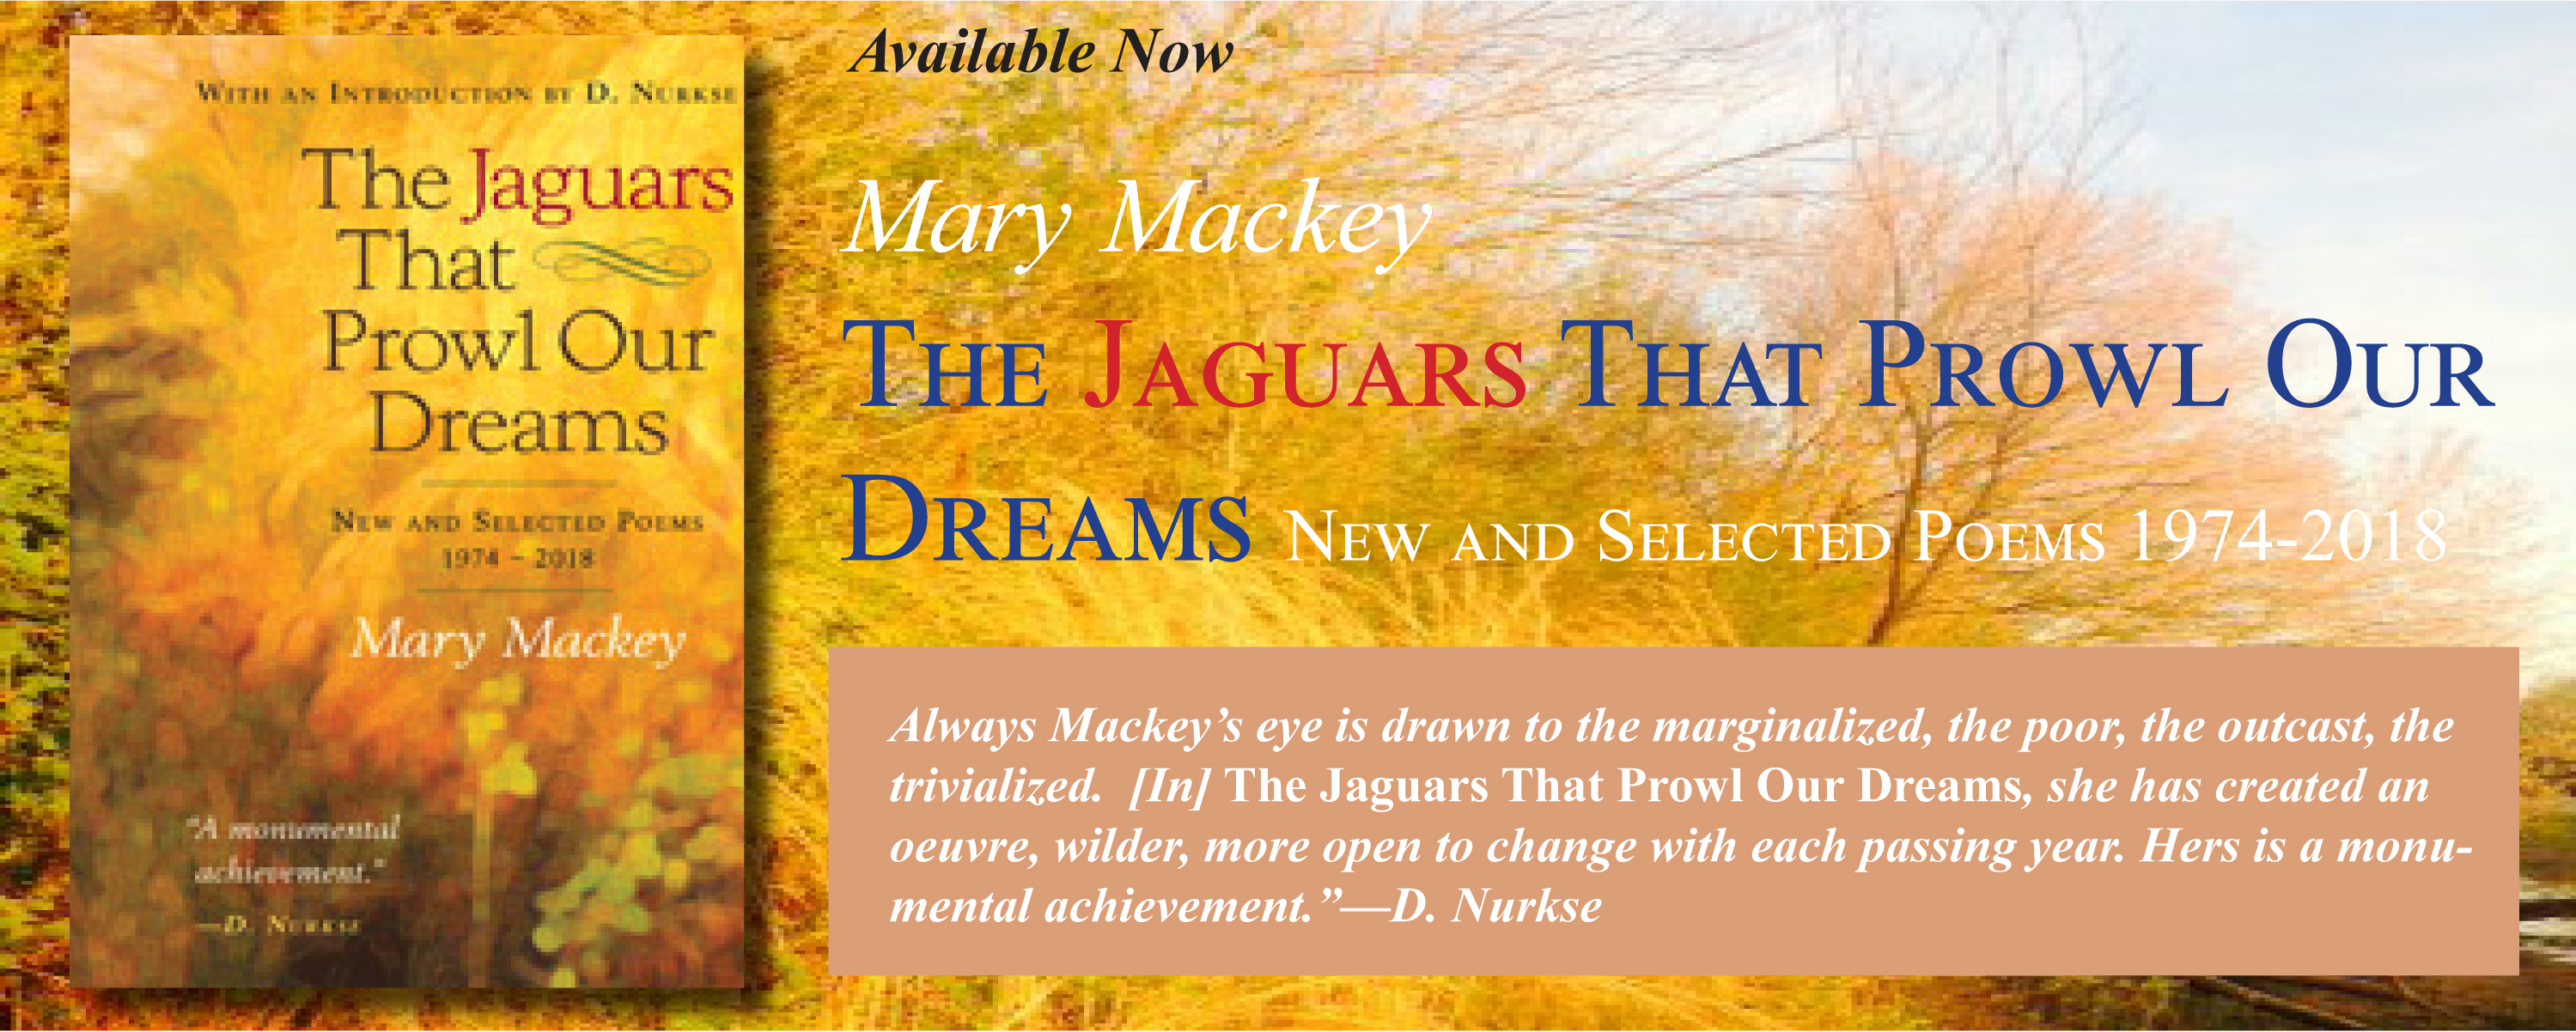 The Jaguars That Prowl Our Dreams